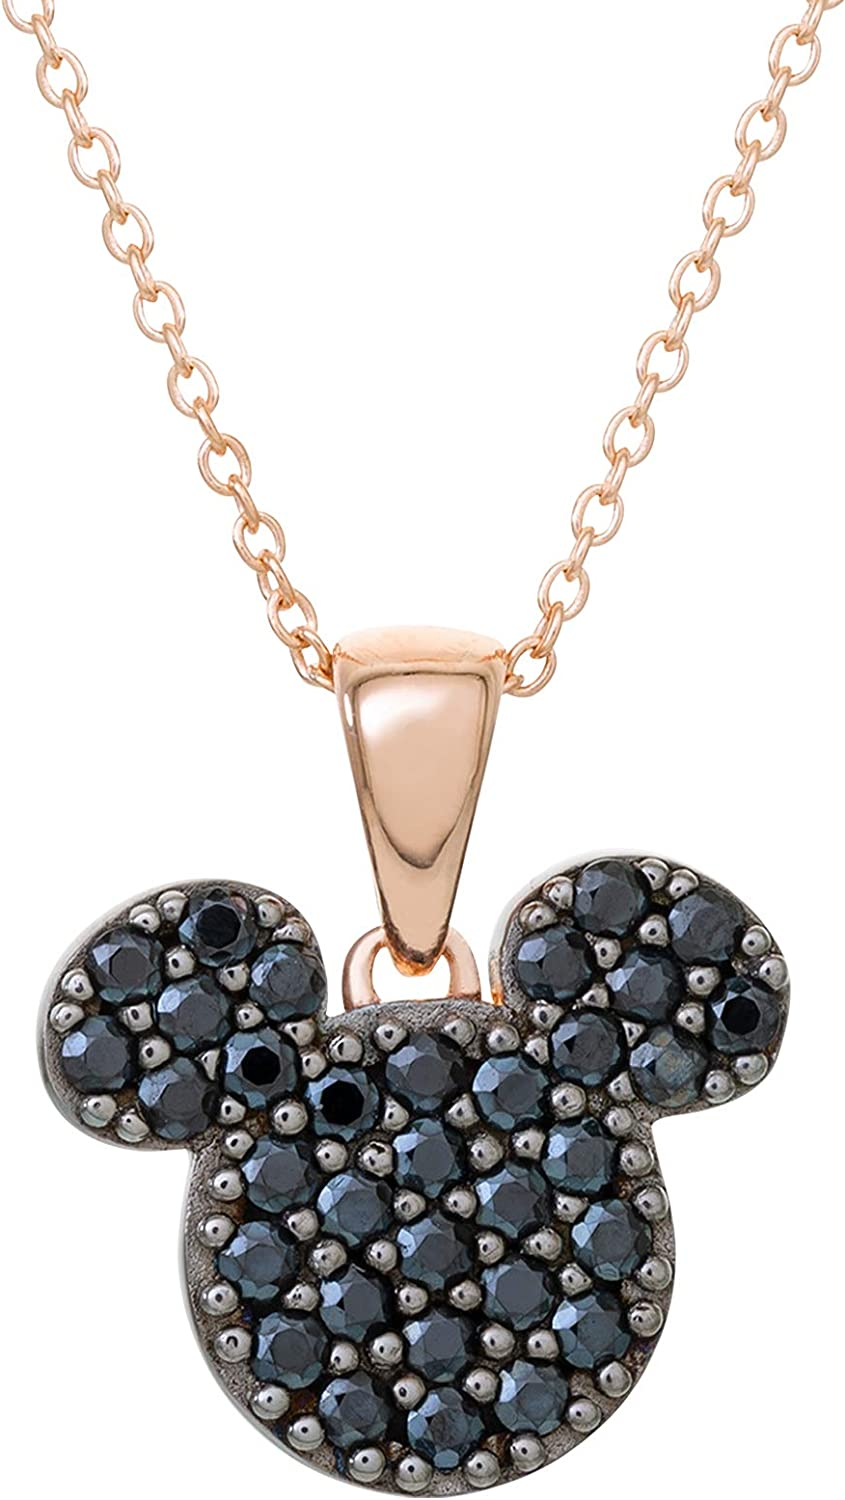 Disney Mickey Mouse Jewelry for Women, Sterling Silver Pink Gold Plated Cubic Zirconia Pendant Necklace, 18 Inch Chain,